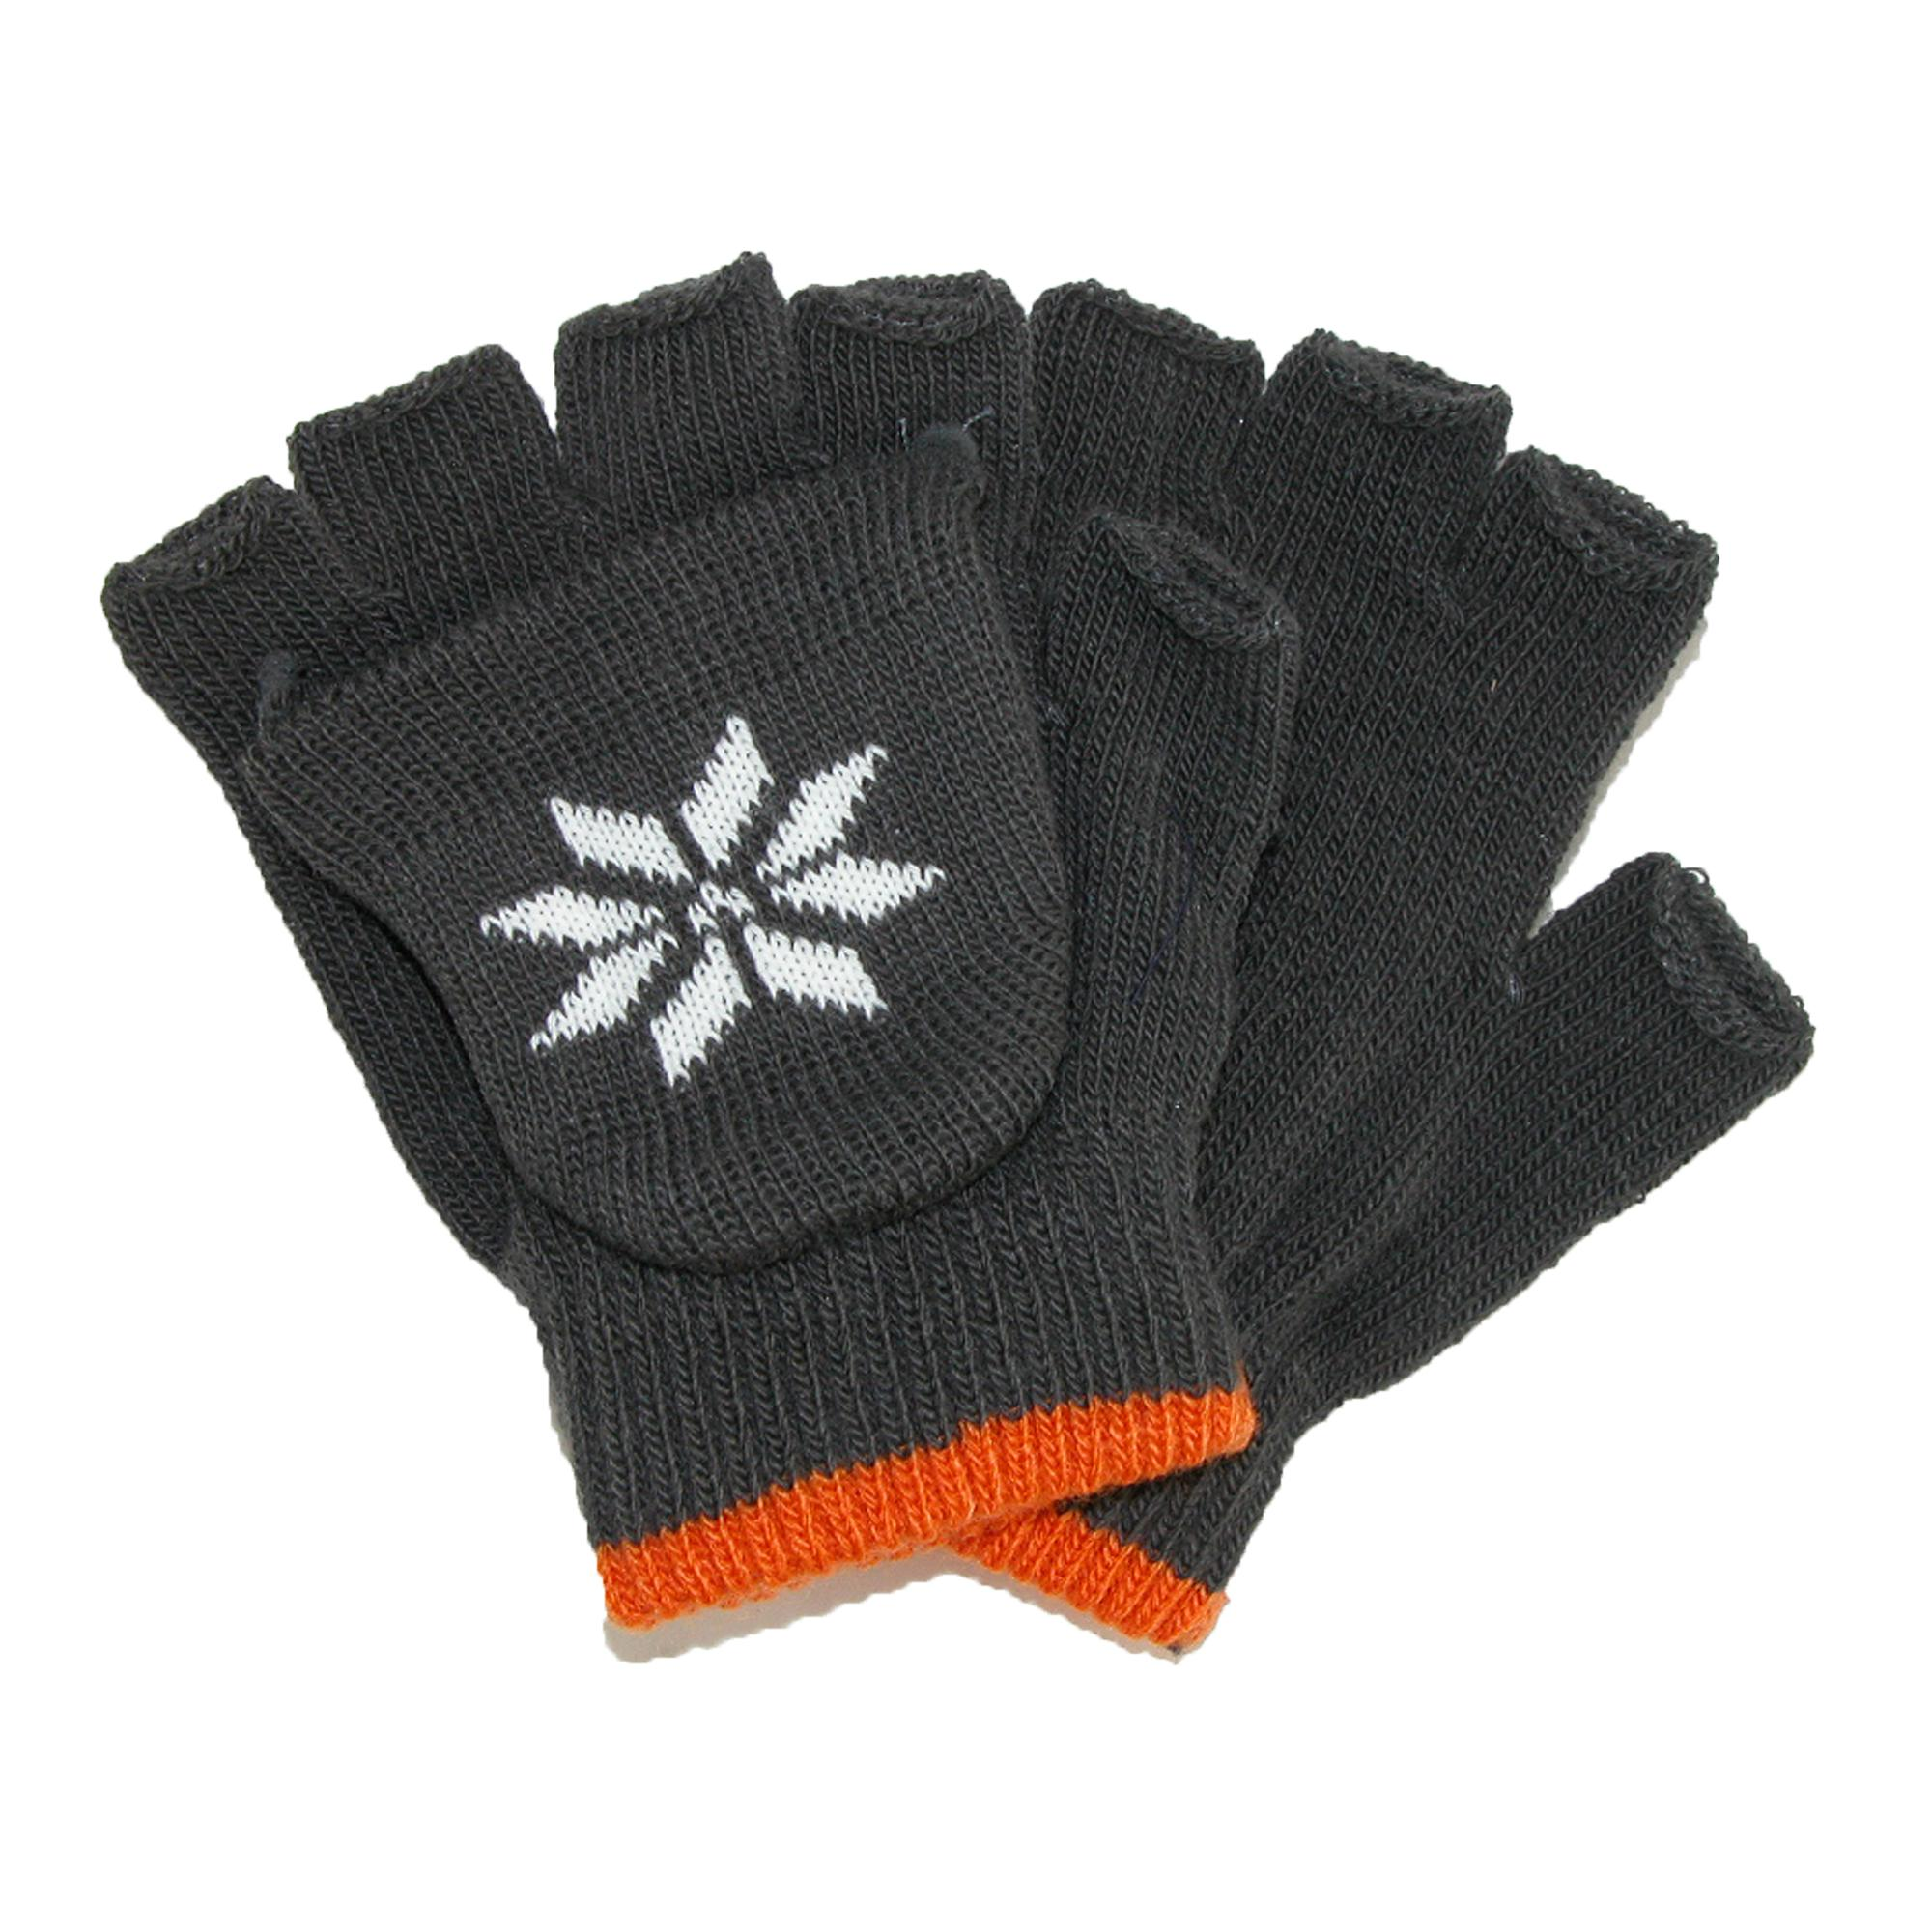 Boys' Mittens. Showing 48 of results that match your query. Search Product Result. Product - Baby Boy Scratch Mittens, 2-Pack. Product Image. Price Product - Little Me 2 Pack Stretch Boys Winter Mittens MVP Football Navy Grey Toddler 2T-4T. Product Image. Price $ 7. Product Title.